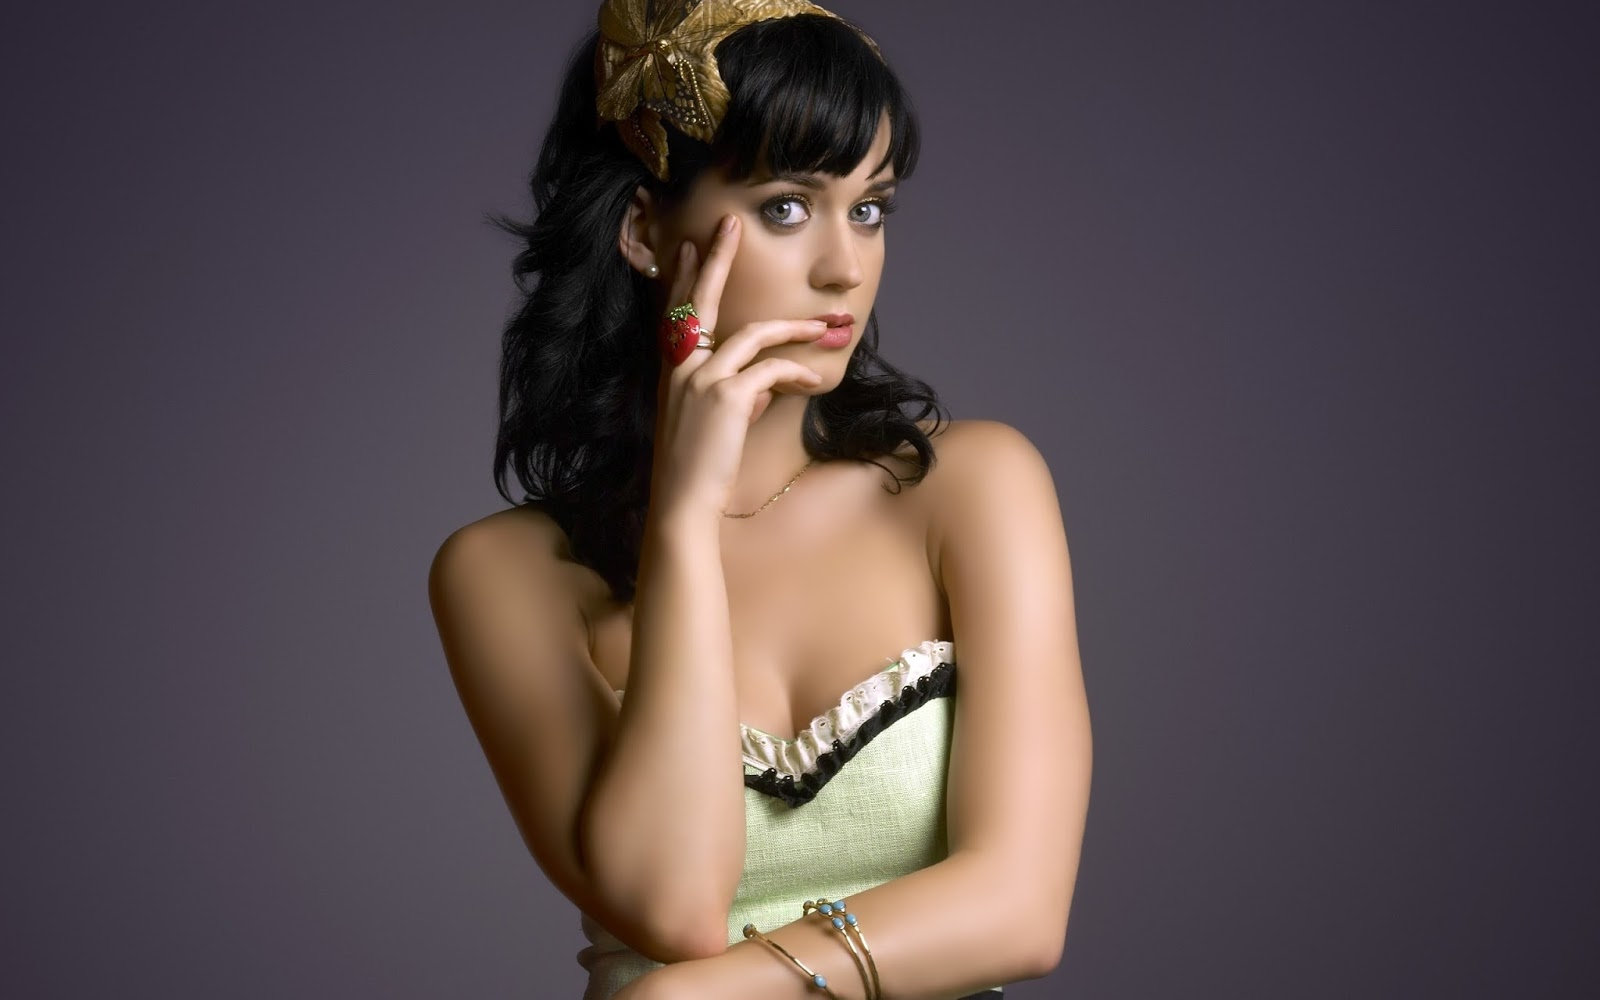 katy perry wallpaper 1080p - photo #12